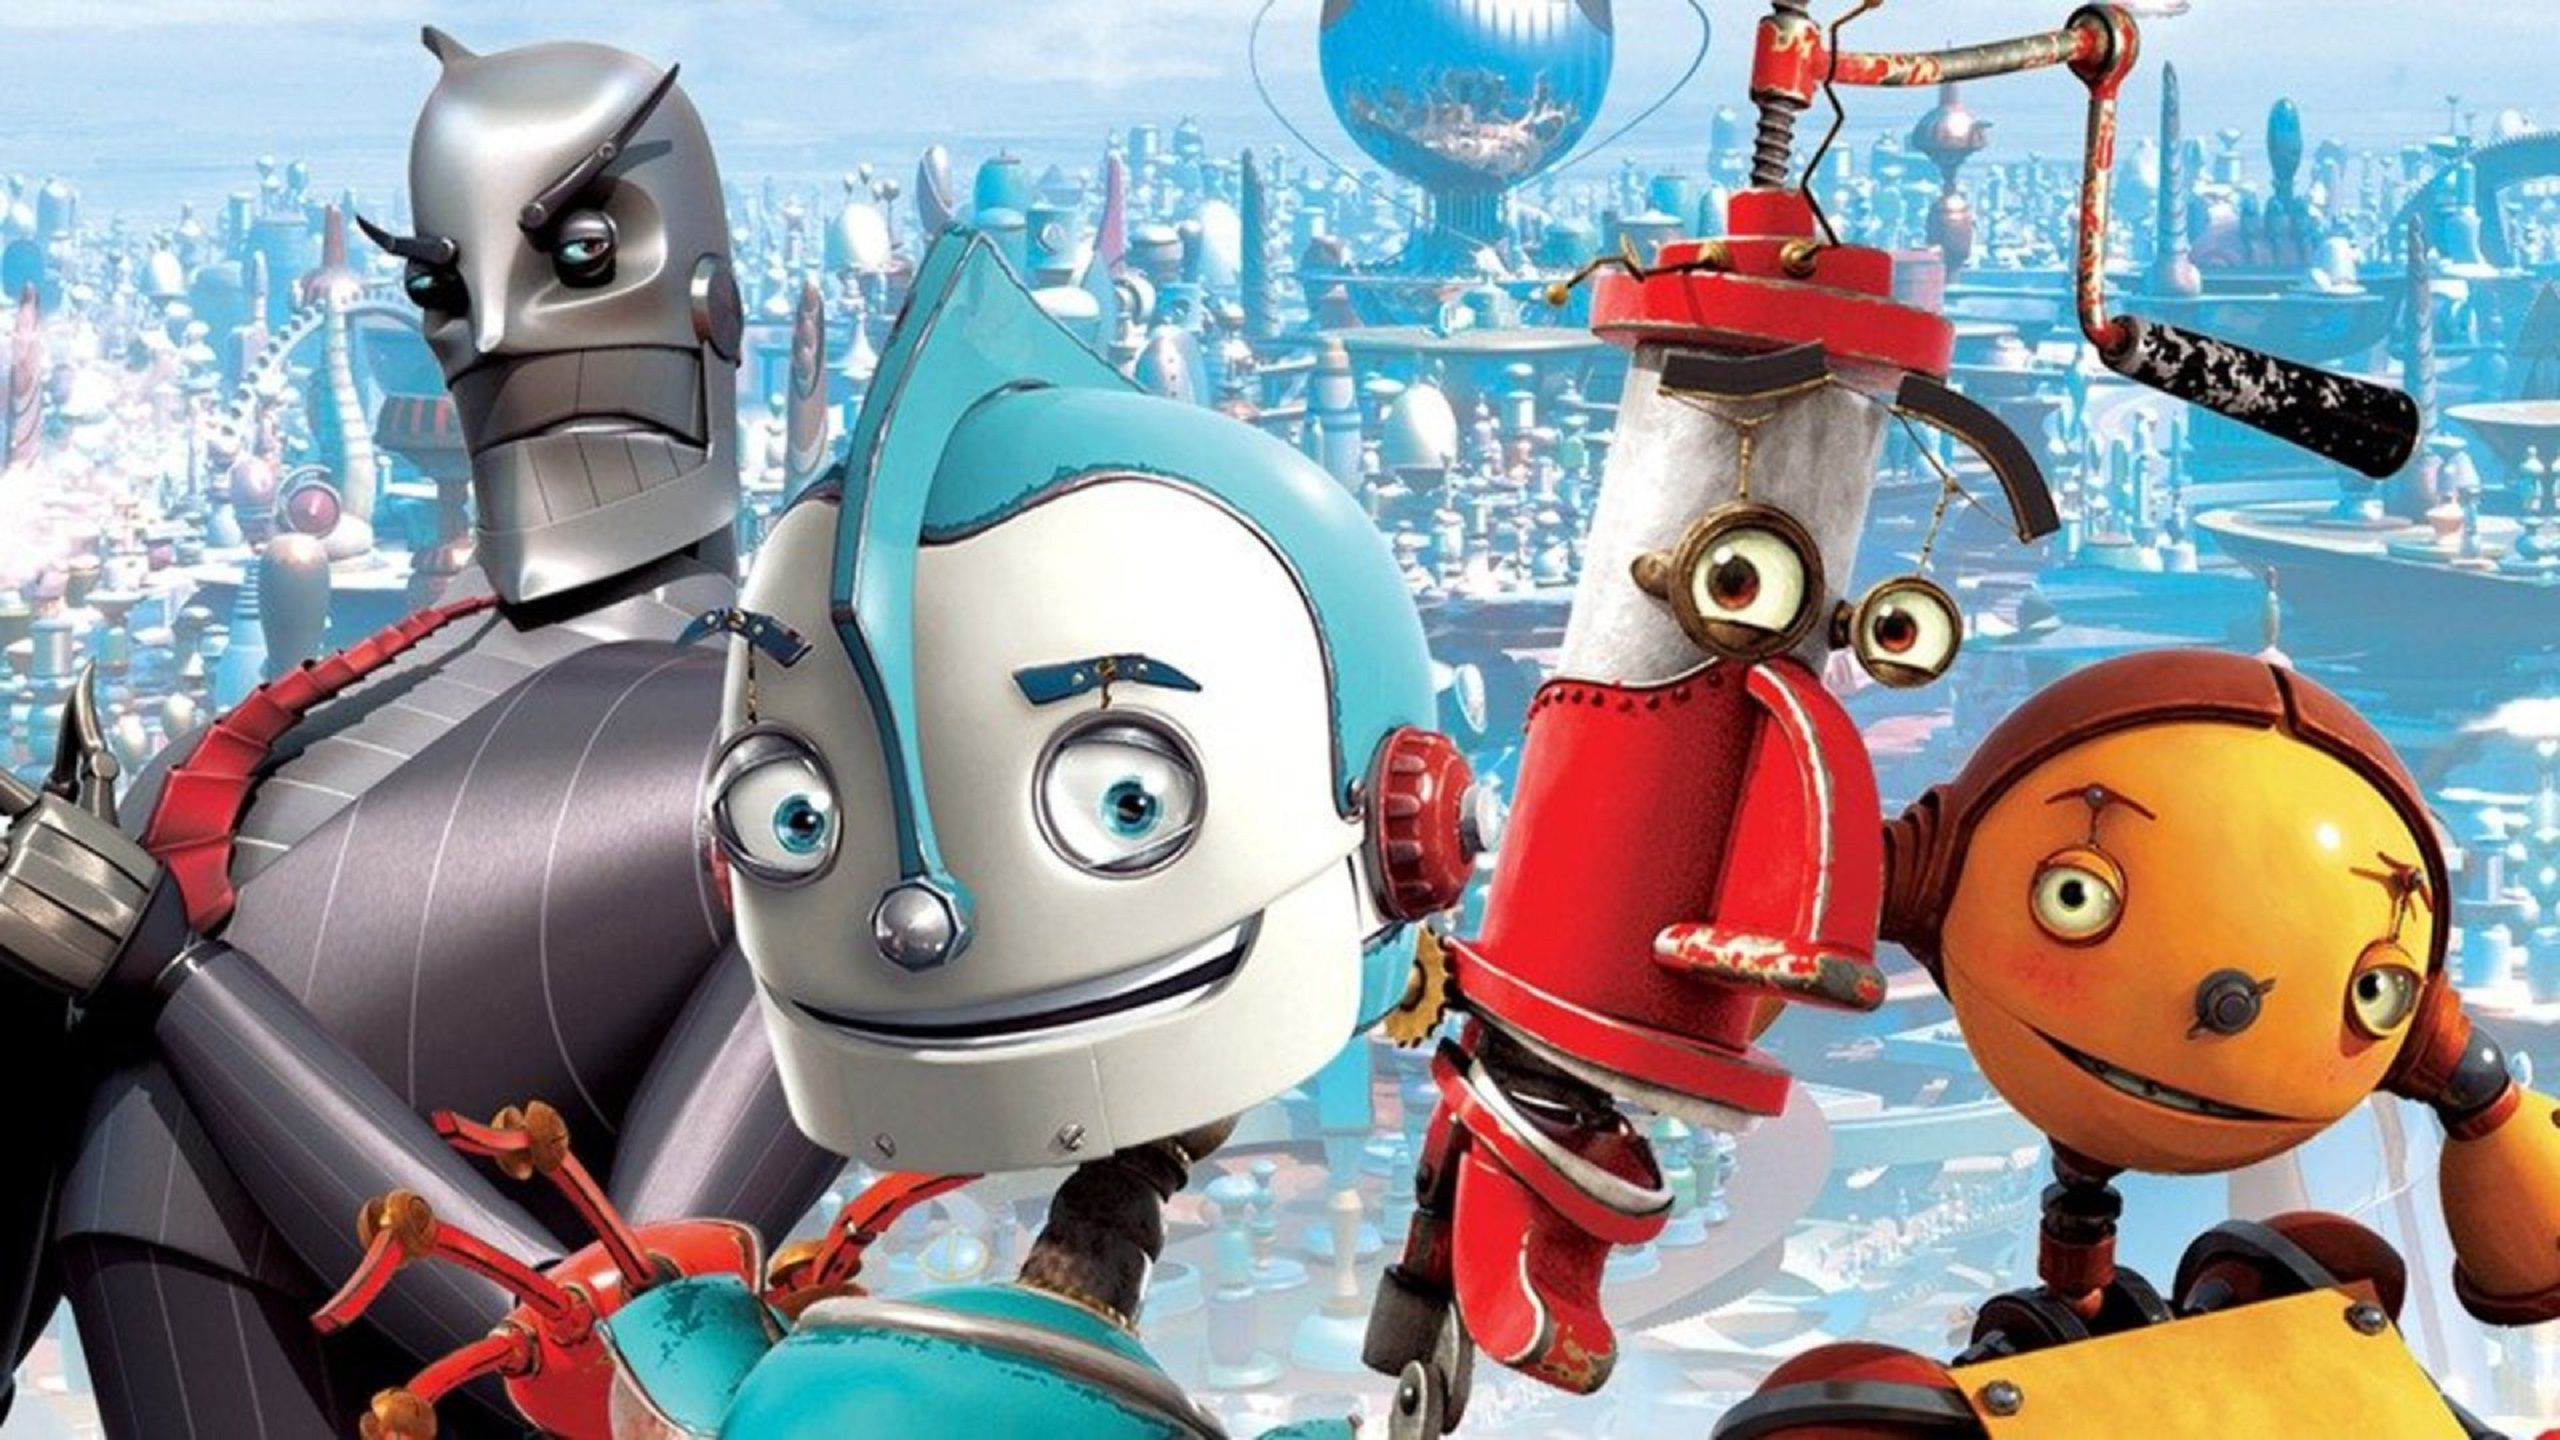 Robots (2005) characters